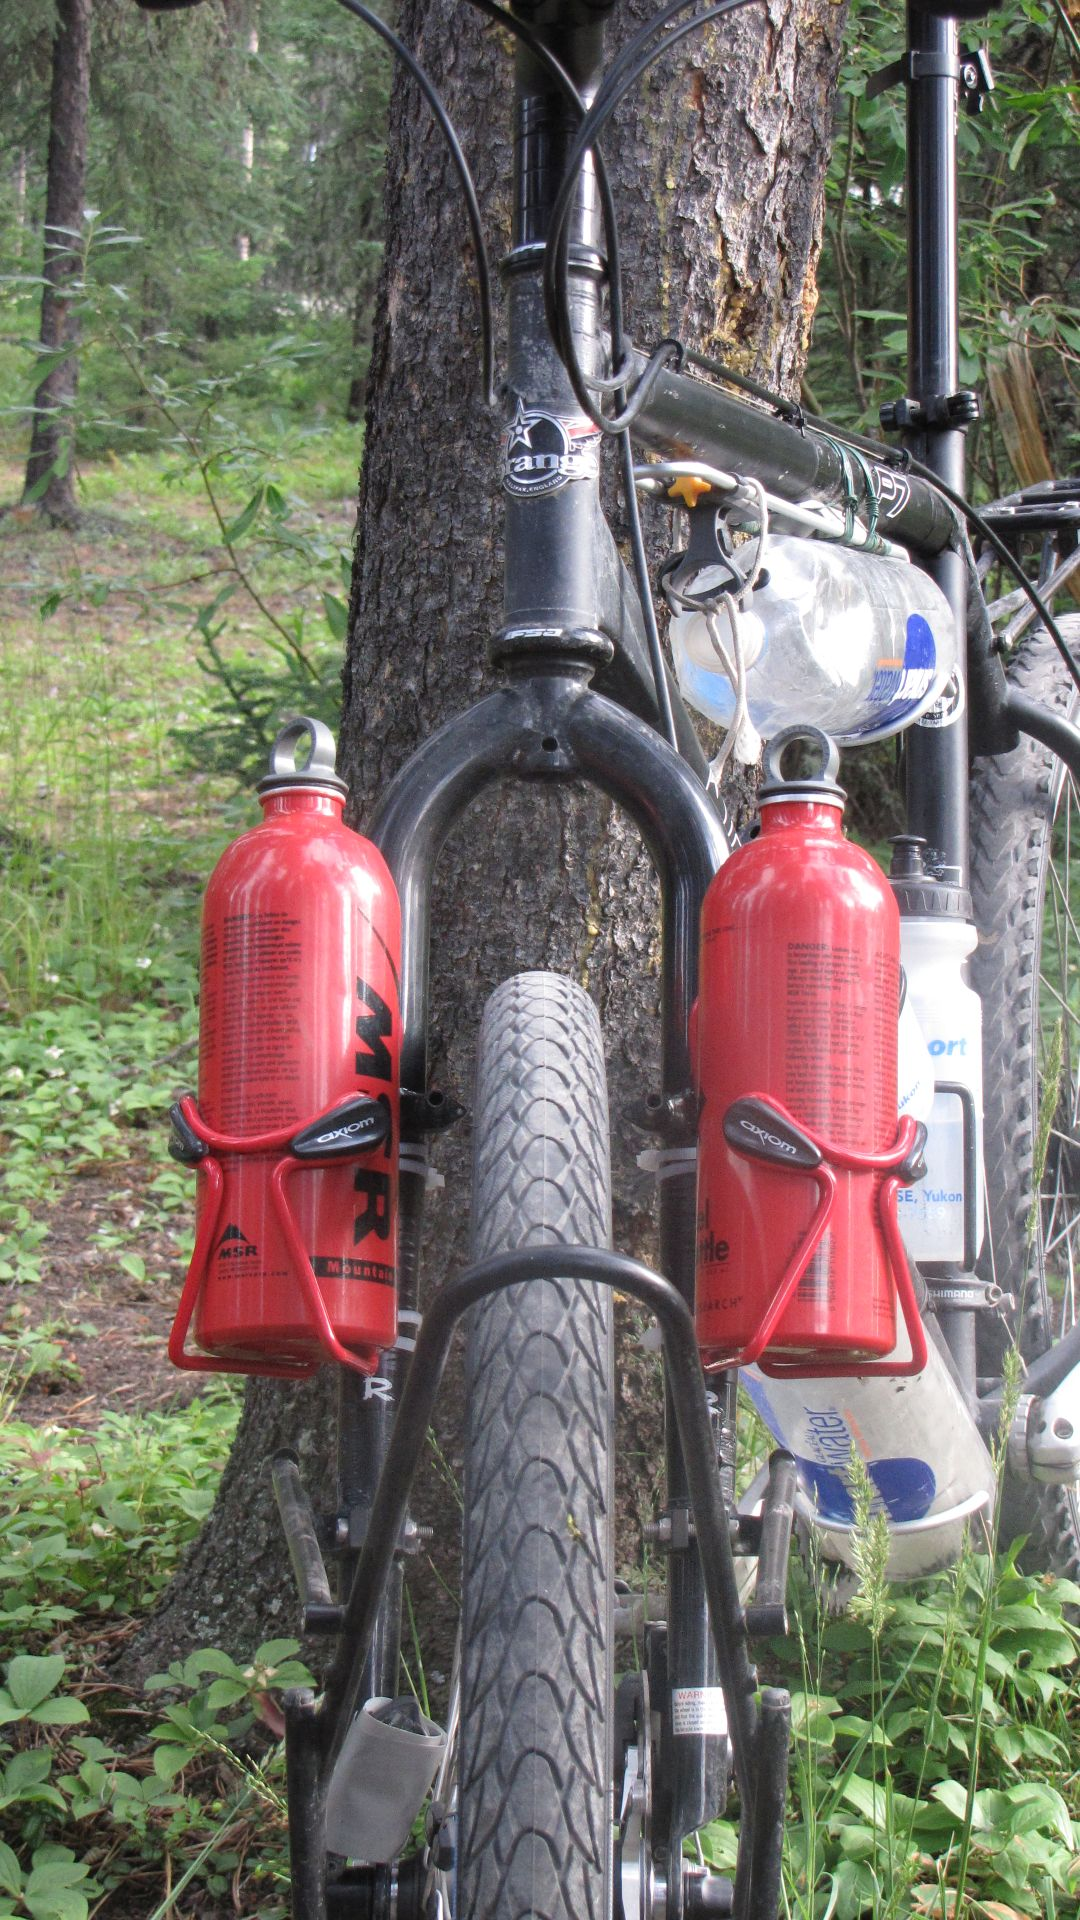 New fuel bottle mounts